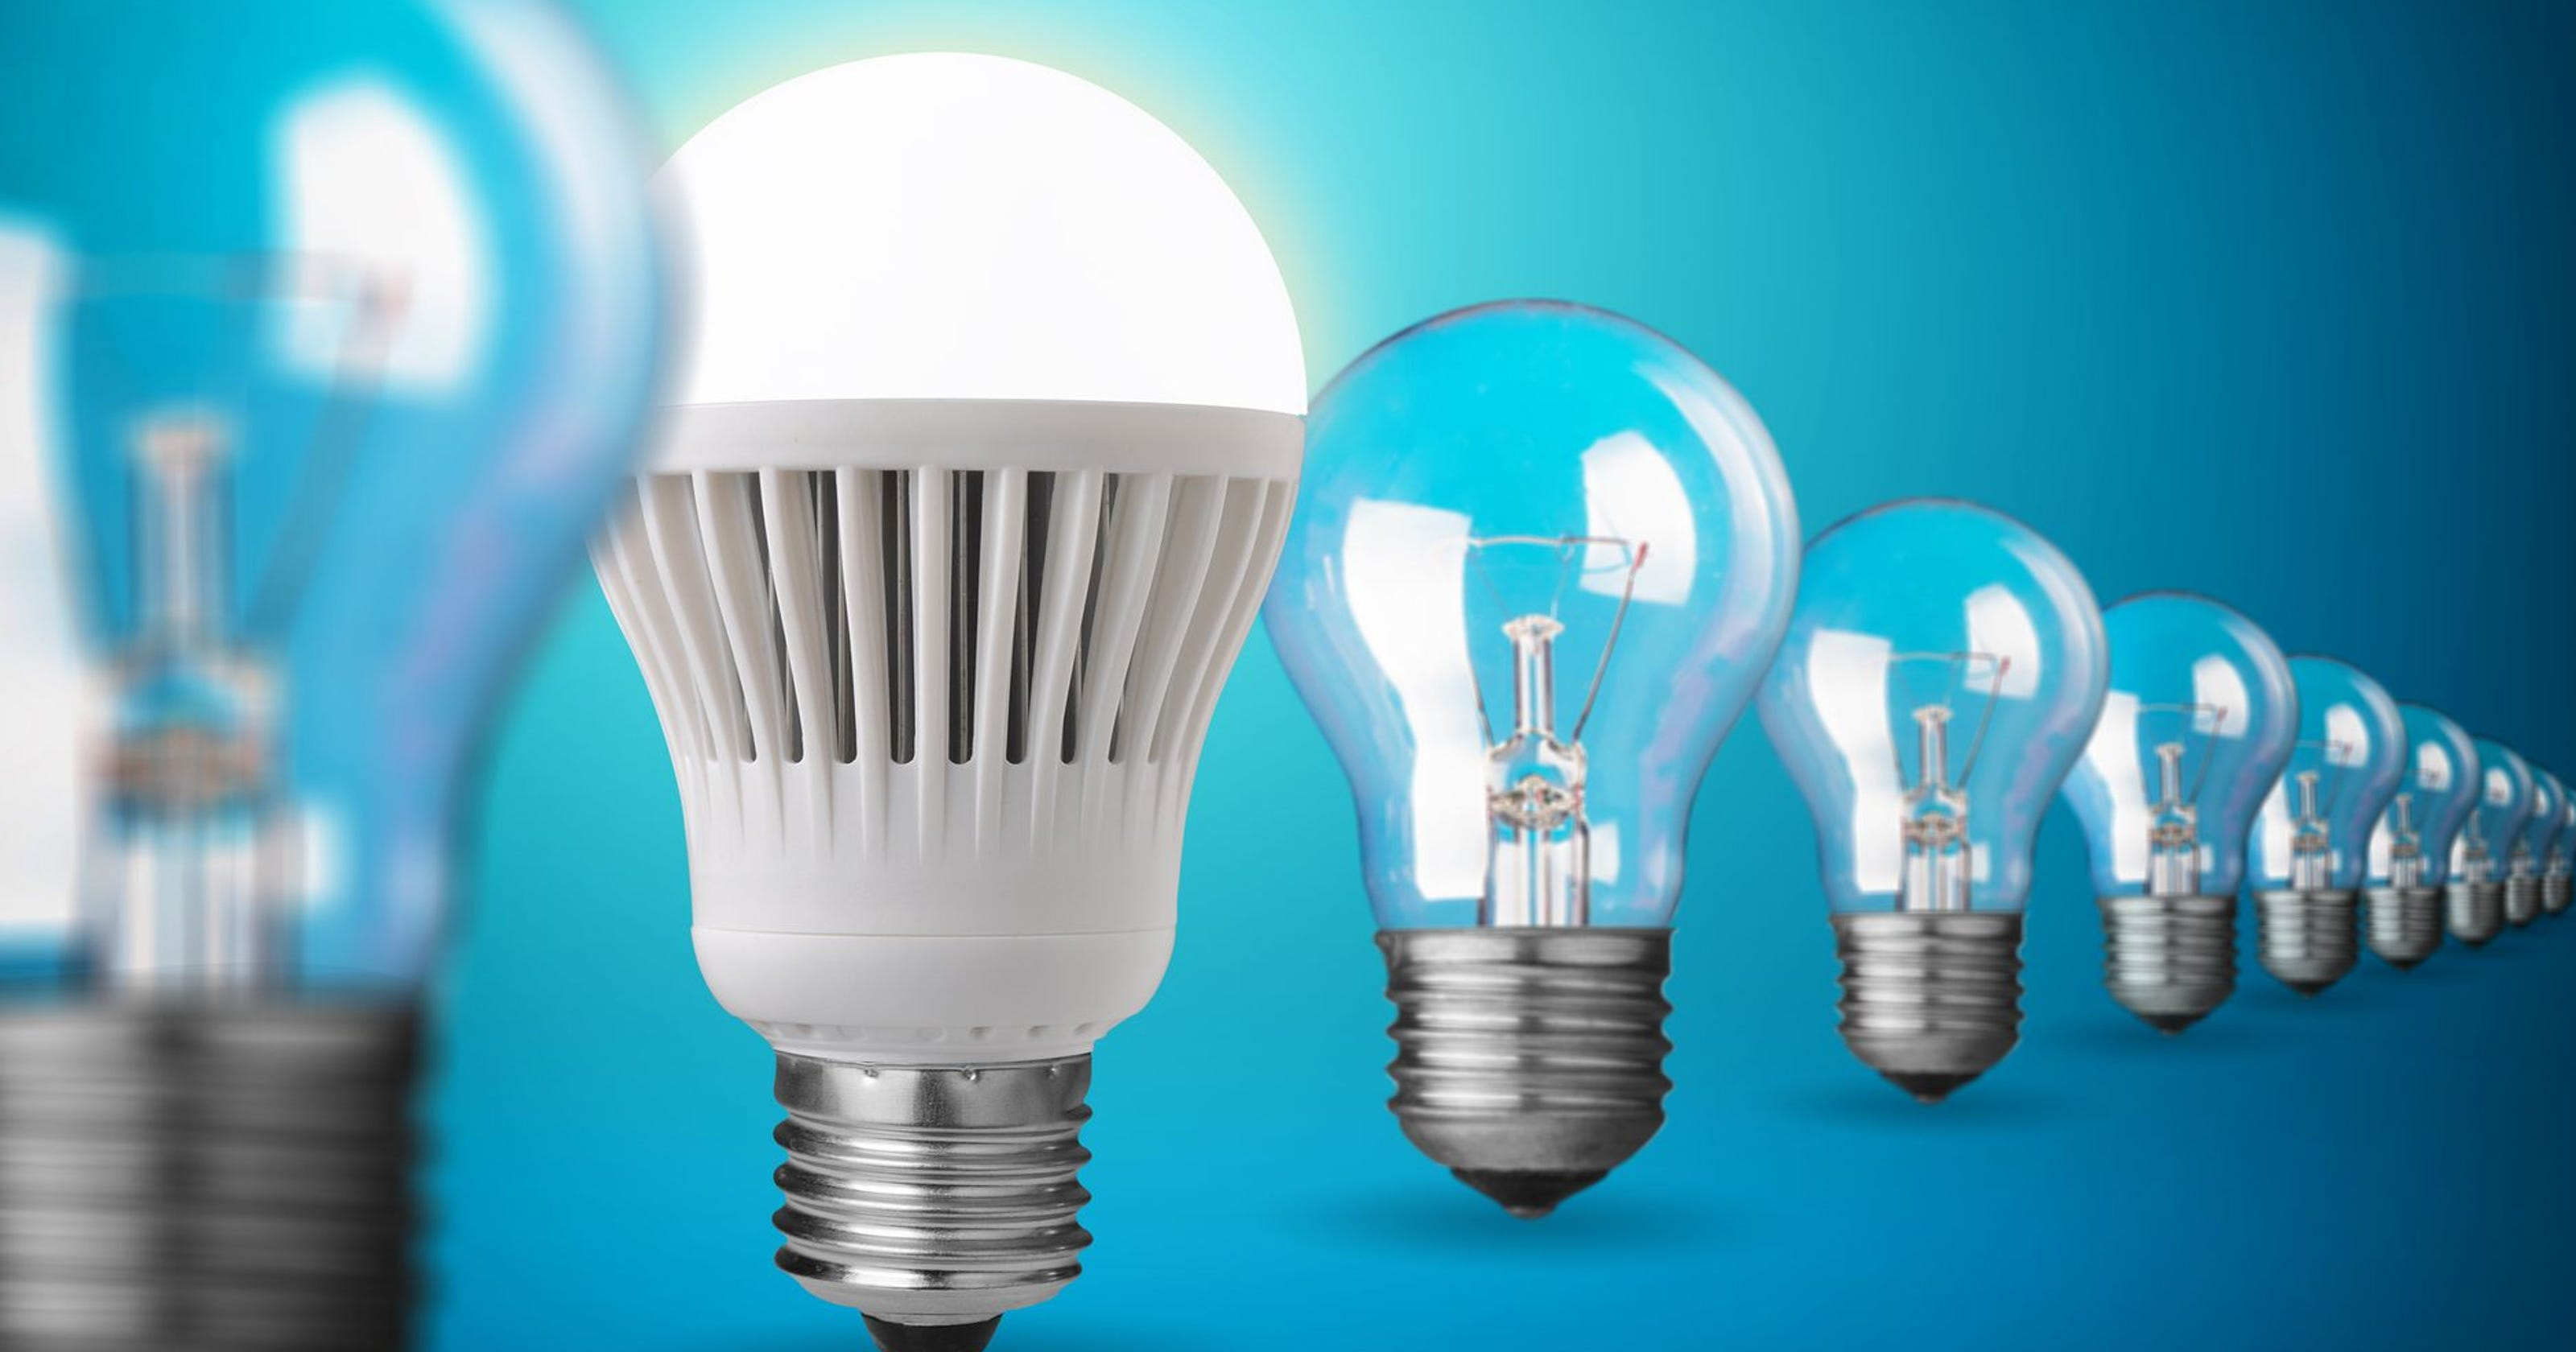 Household savings: LED bulbs gaining in cost efficiency